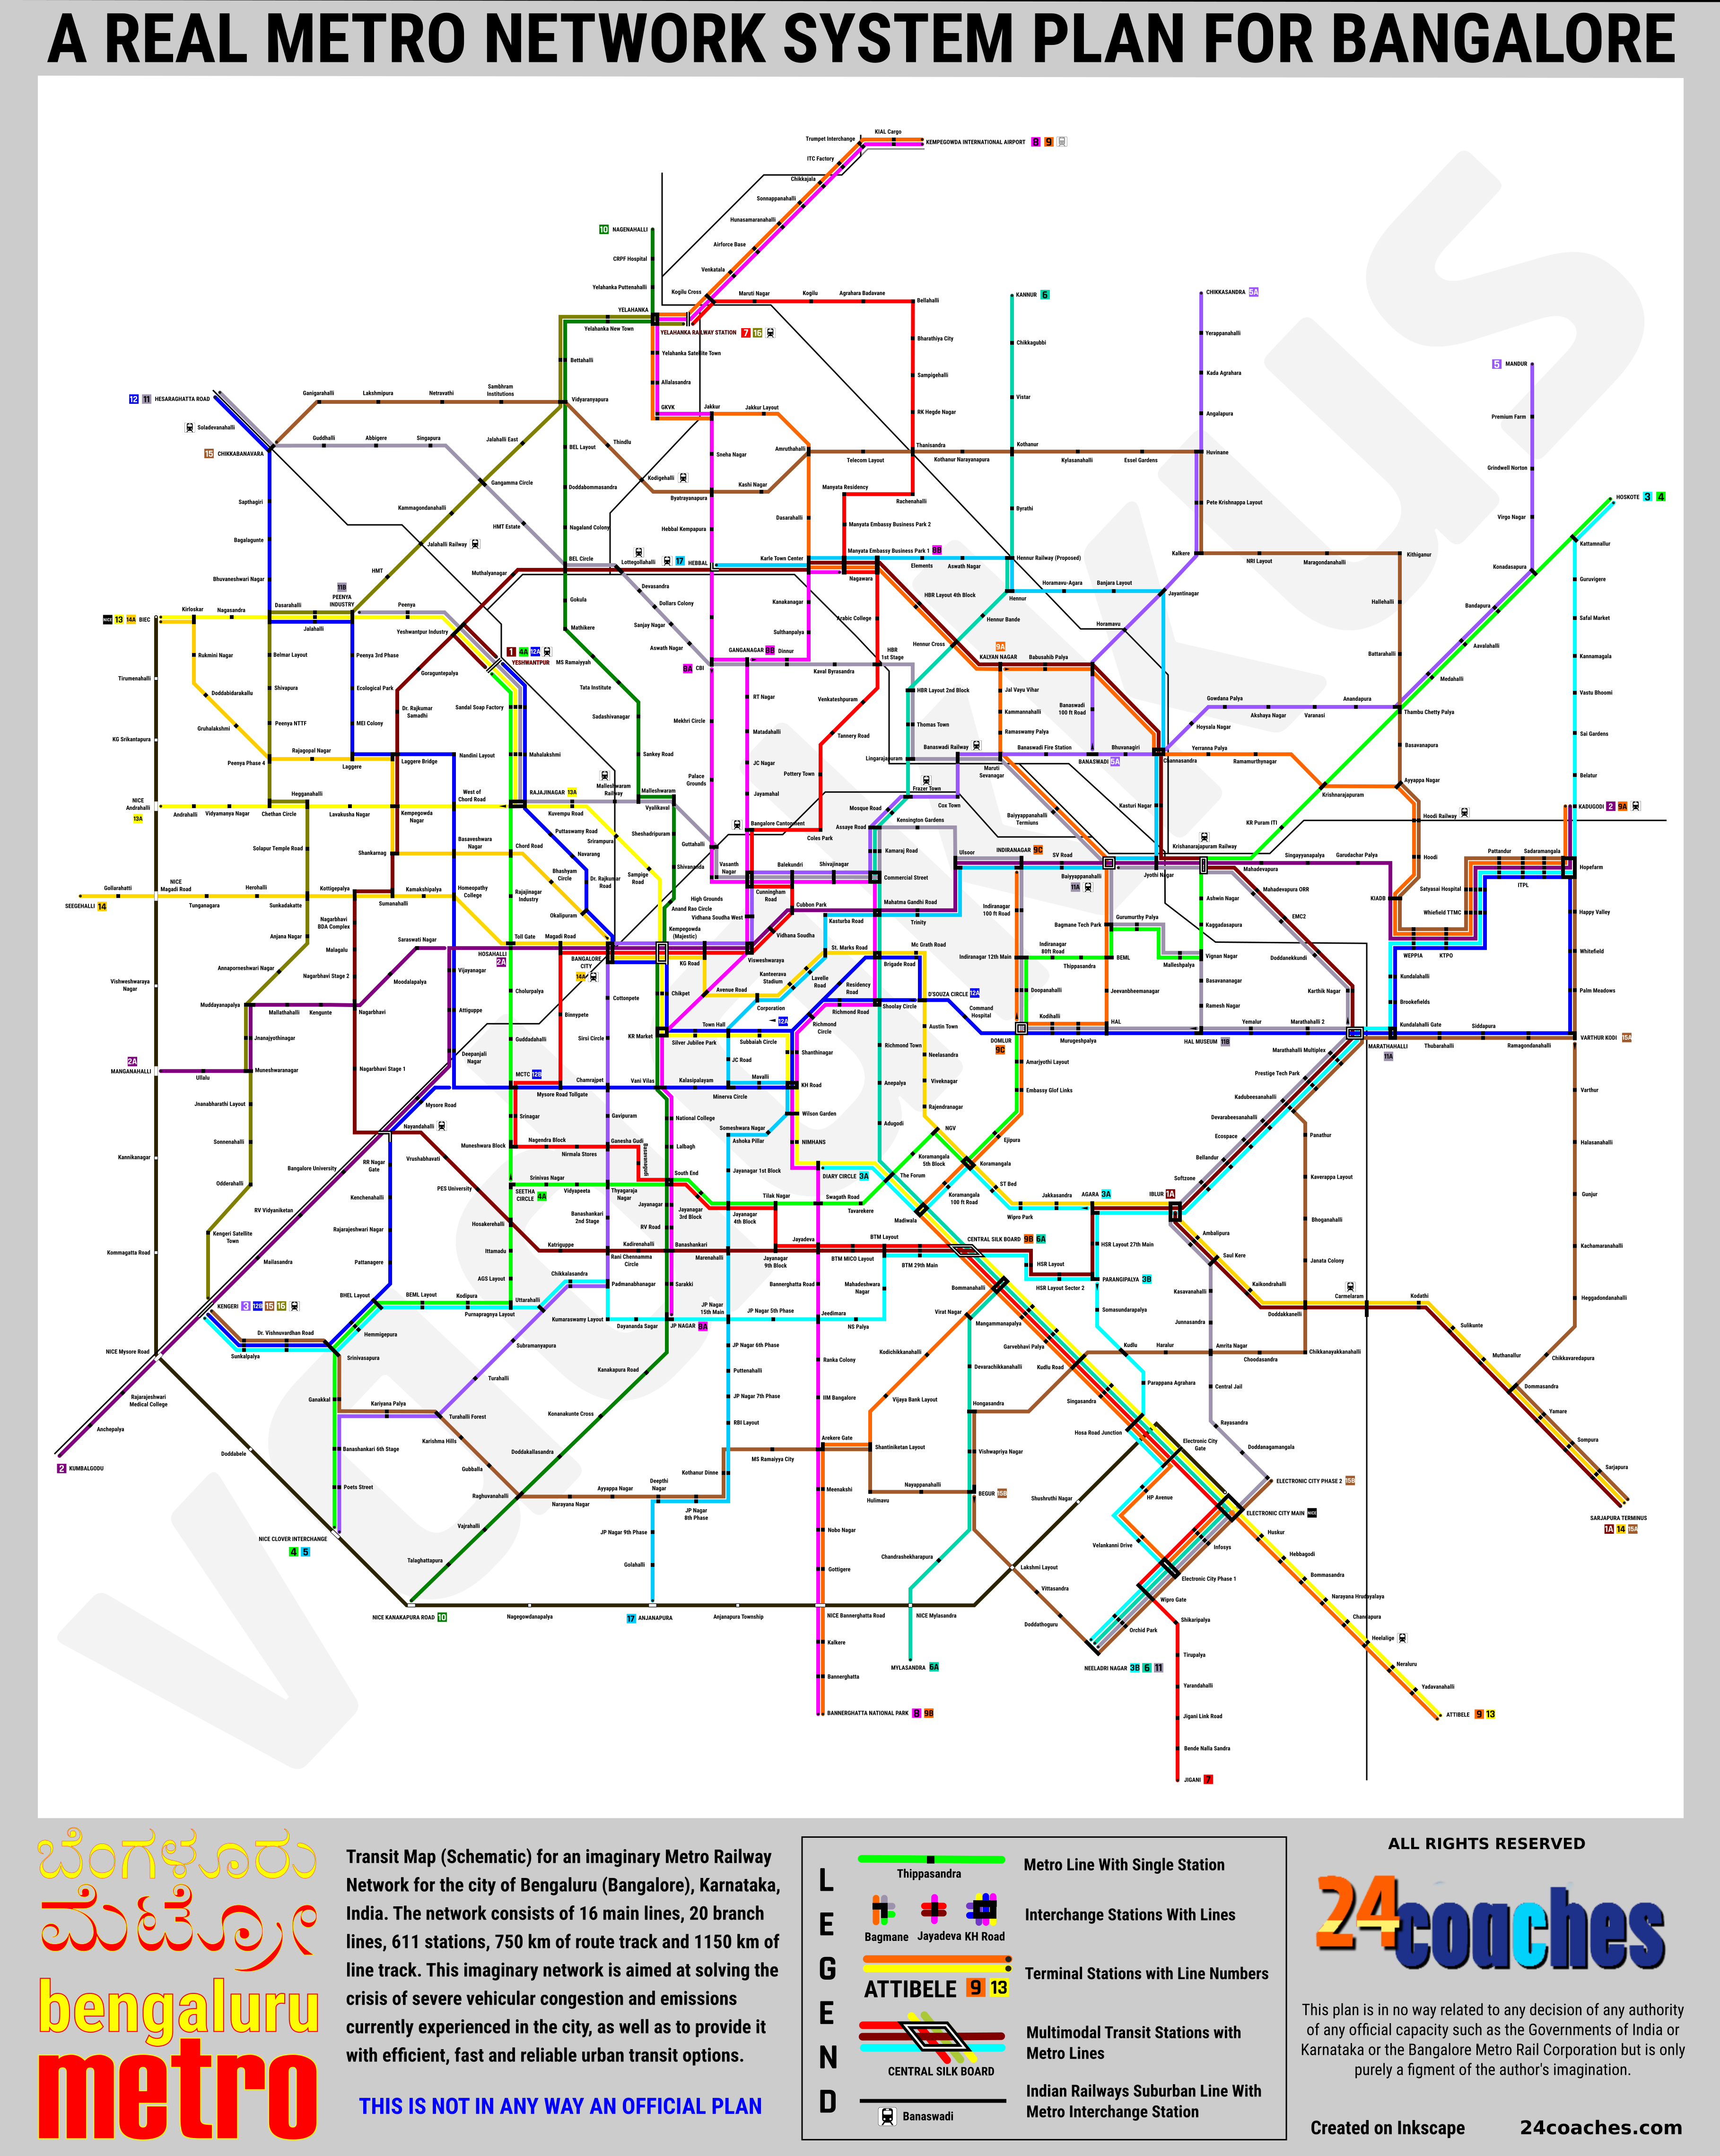 A network plan and (schematic) transit map for an imaginary